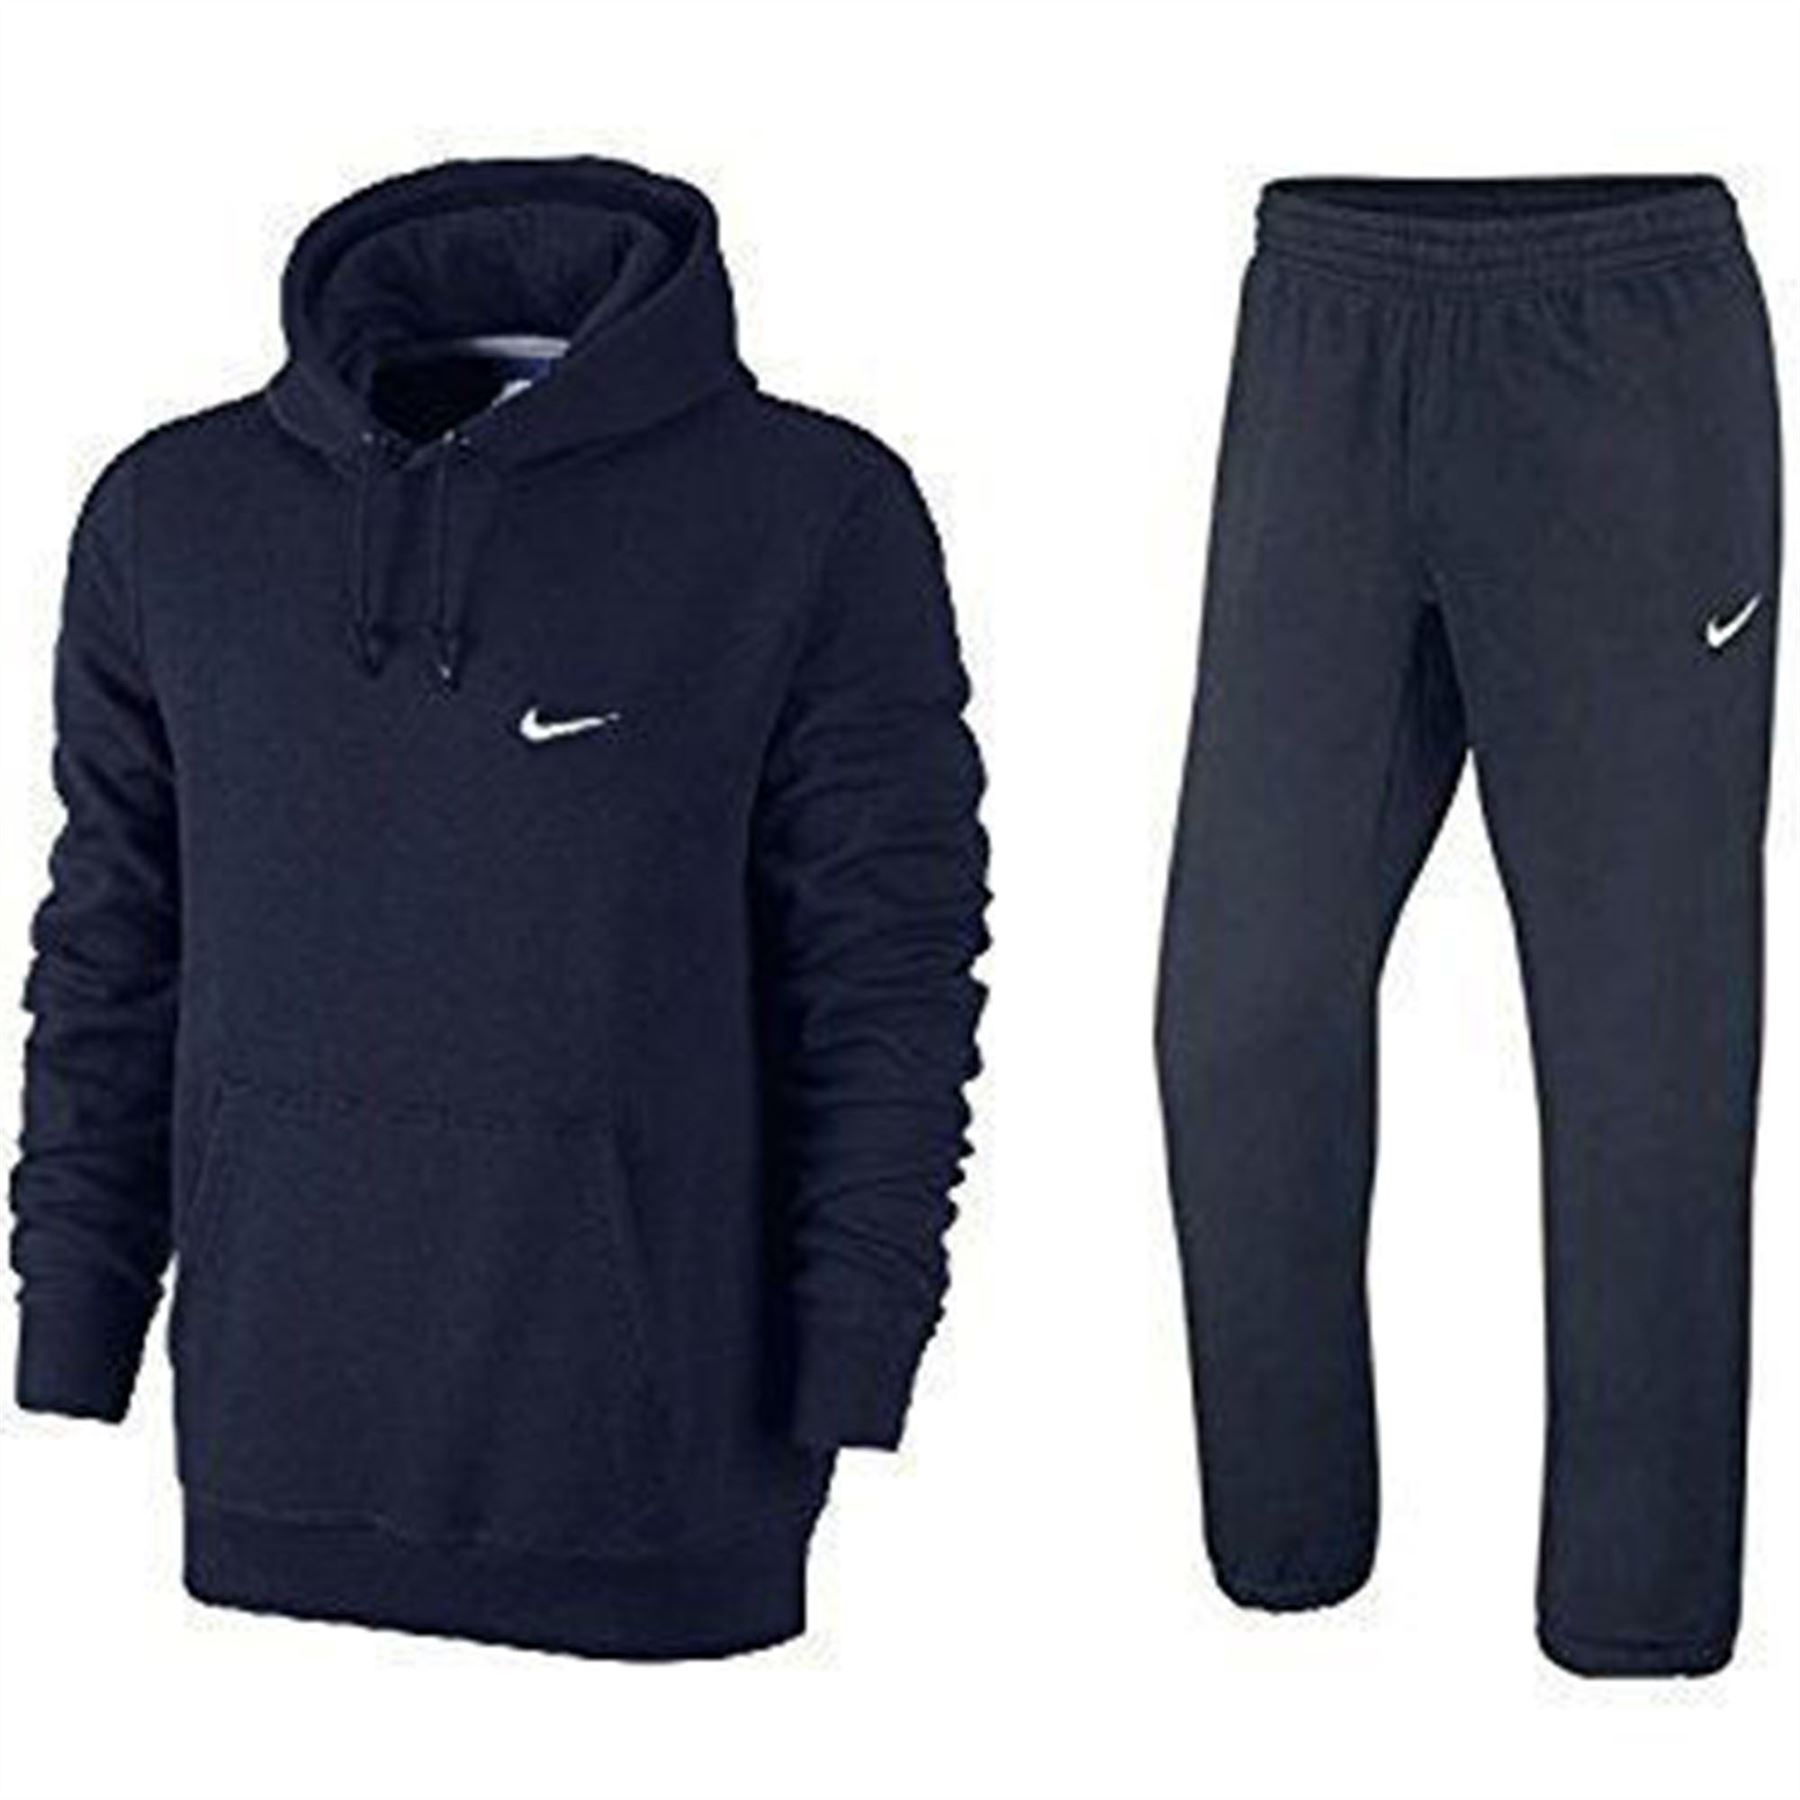 nike air mens zip up hoody hooded sweatshirt top sports. Black Bedroom Furniture Sets. Home Design Ideas